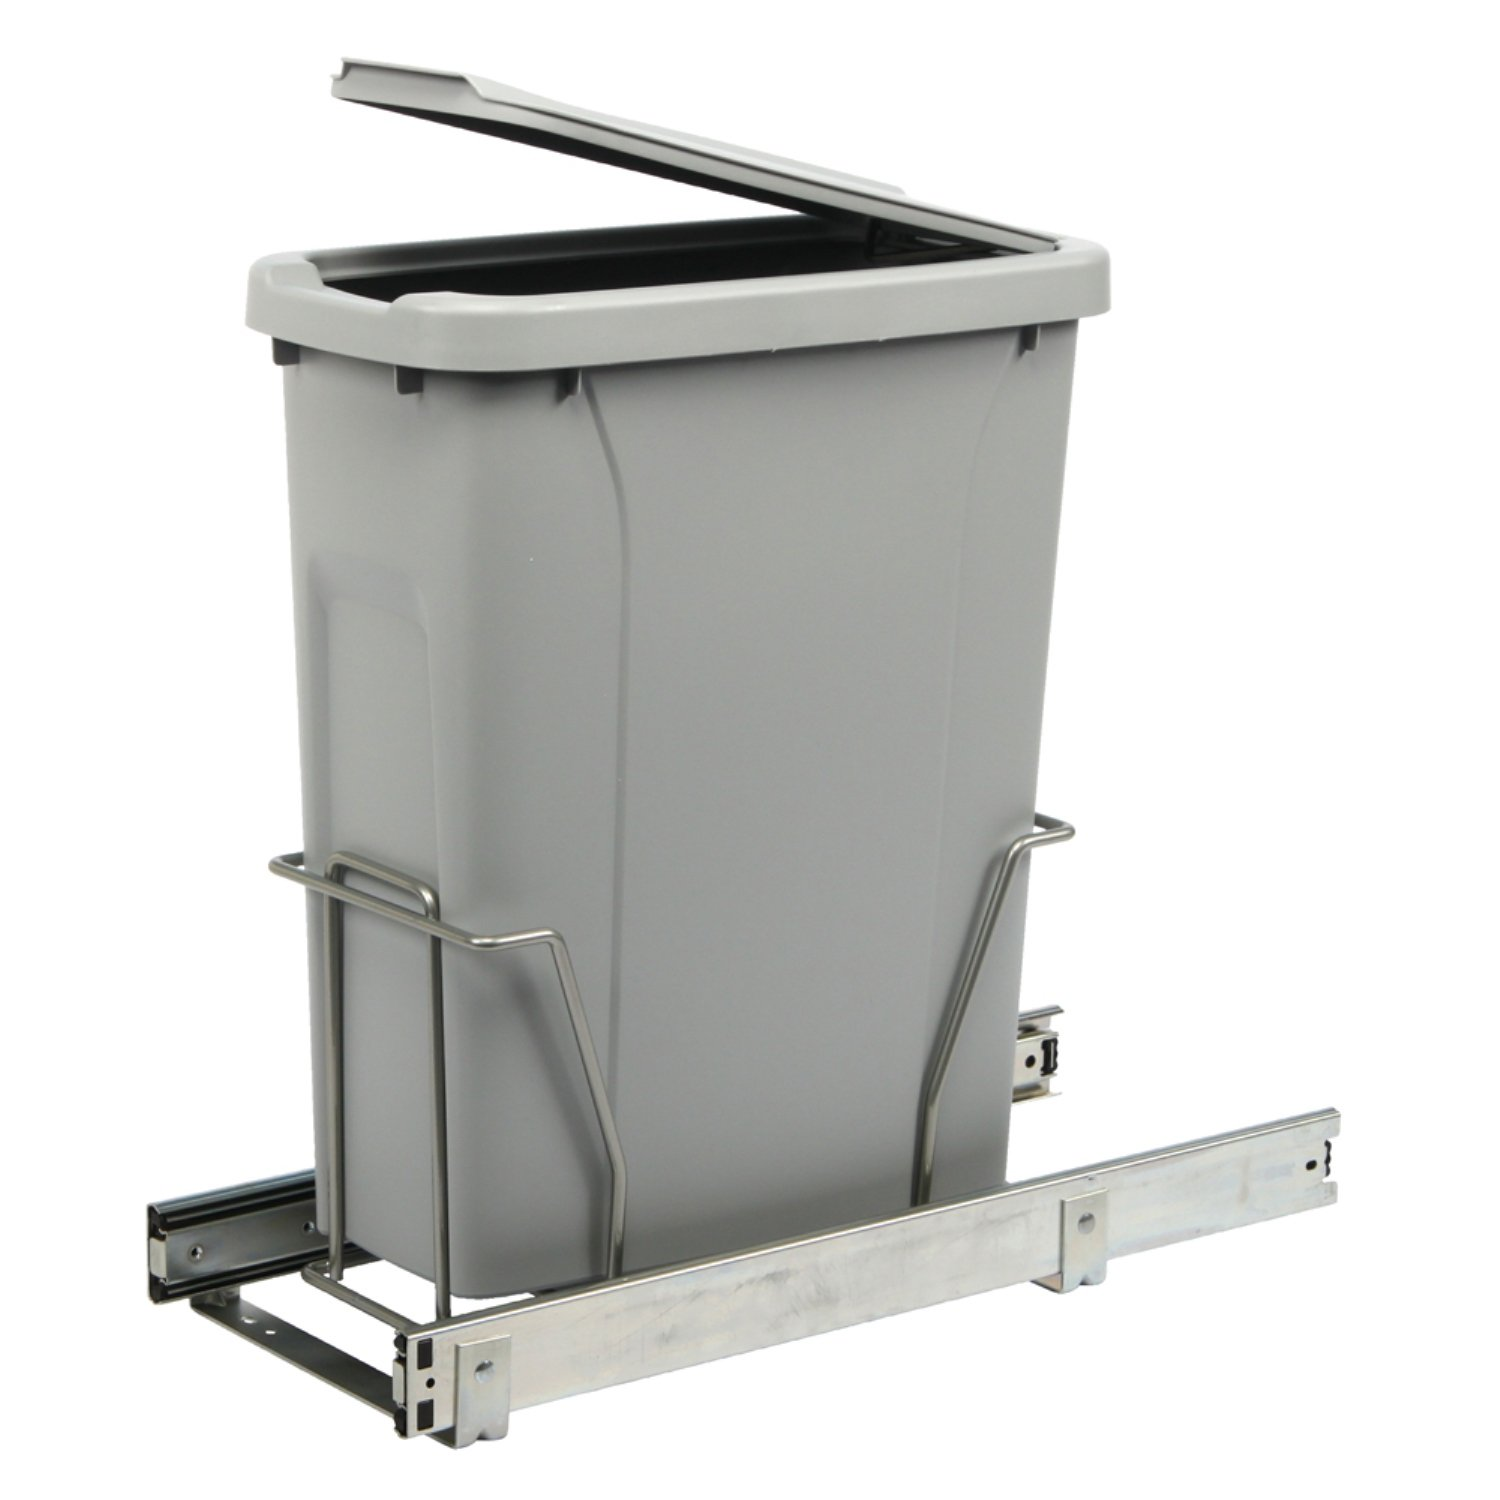 Amazon.com: Knape U0026 Vogt PSW10 1 35 R P In Cabinet Pull Out Trash Can,  18.80 Inch By 9.3 Inch By 20 Inch: Home U0026 Kitchen